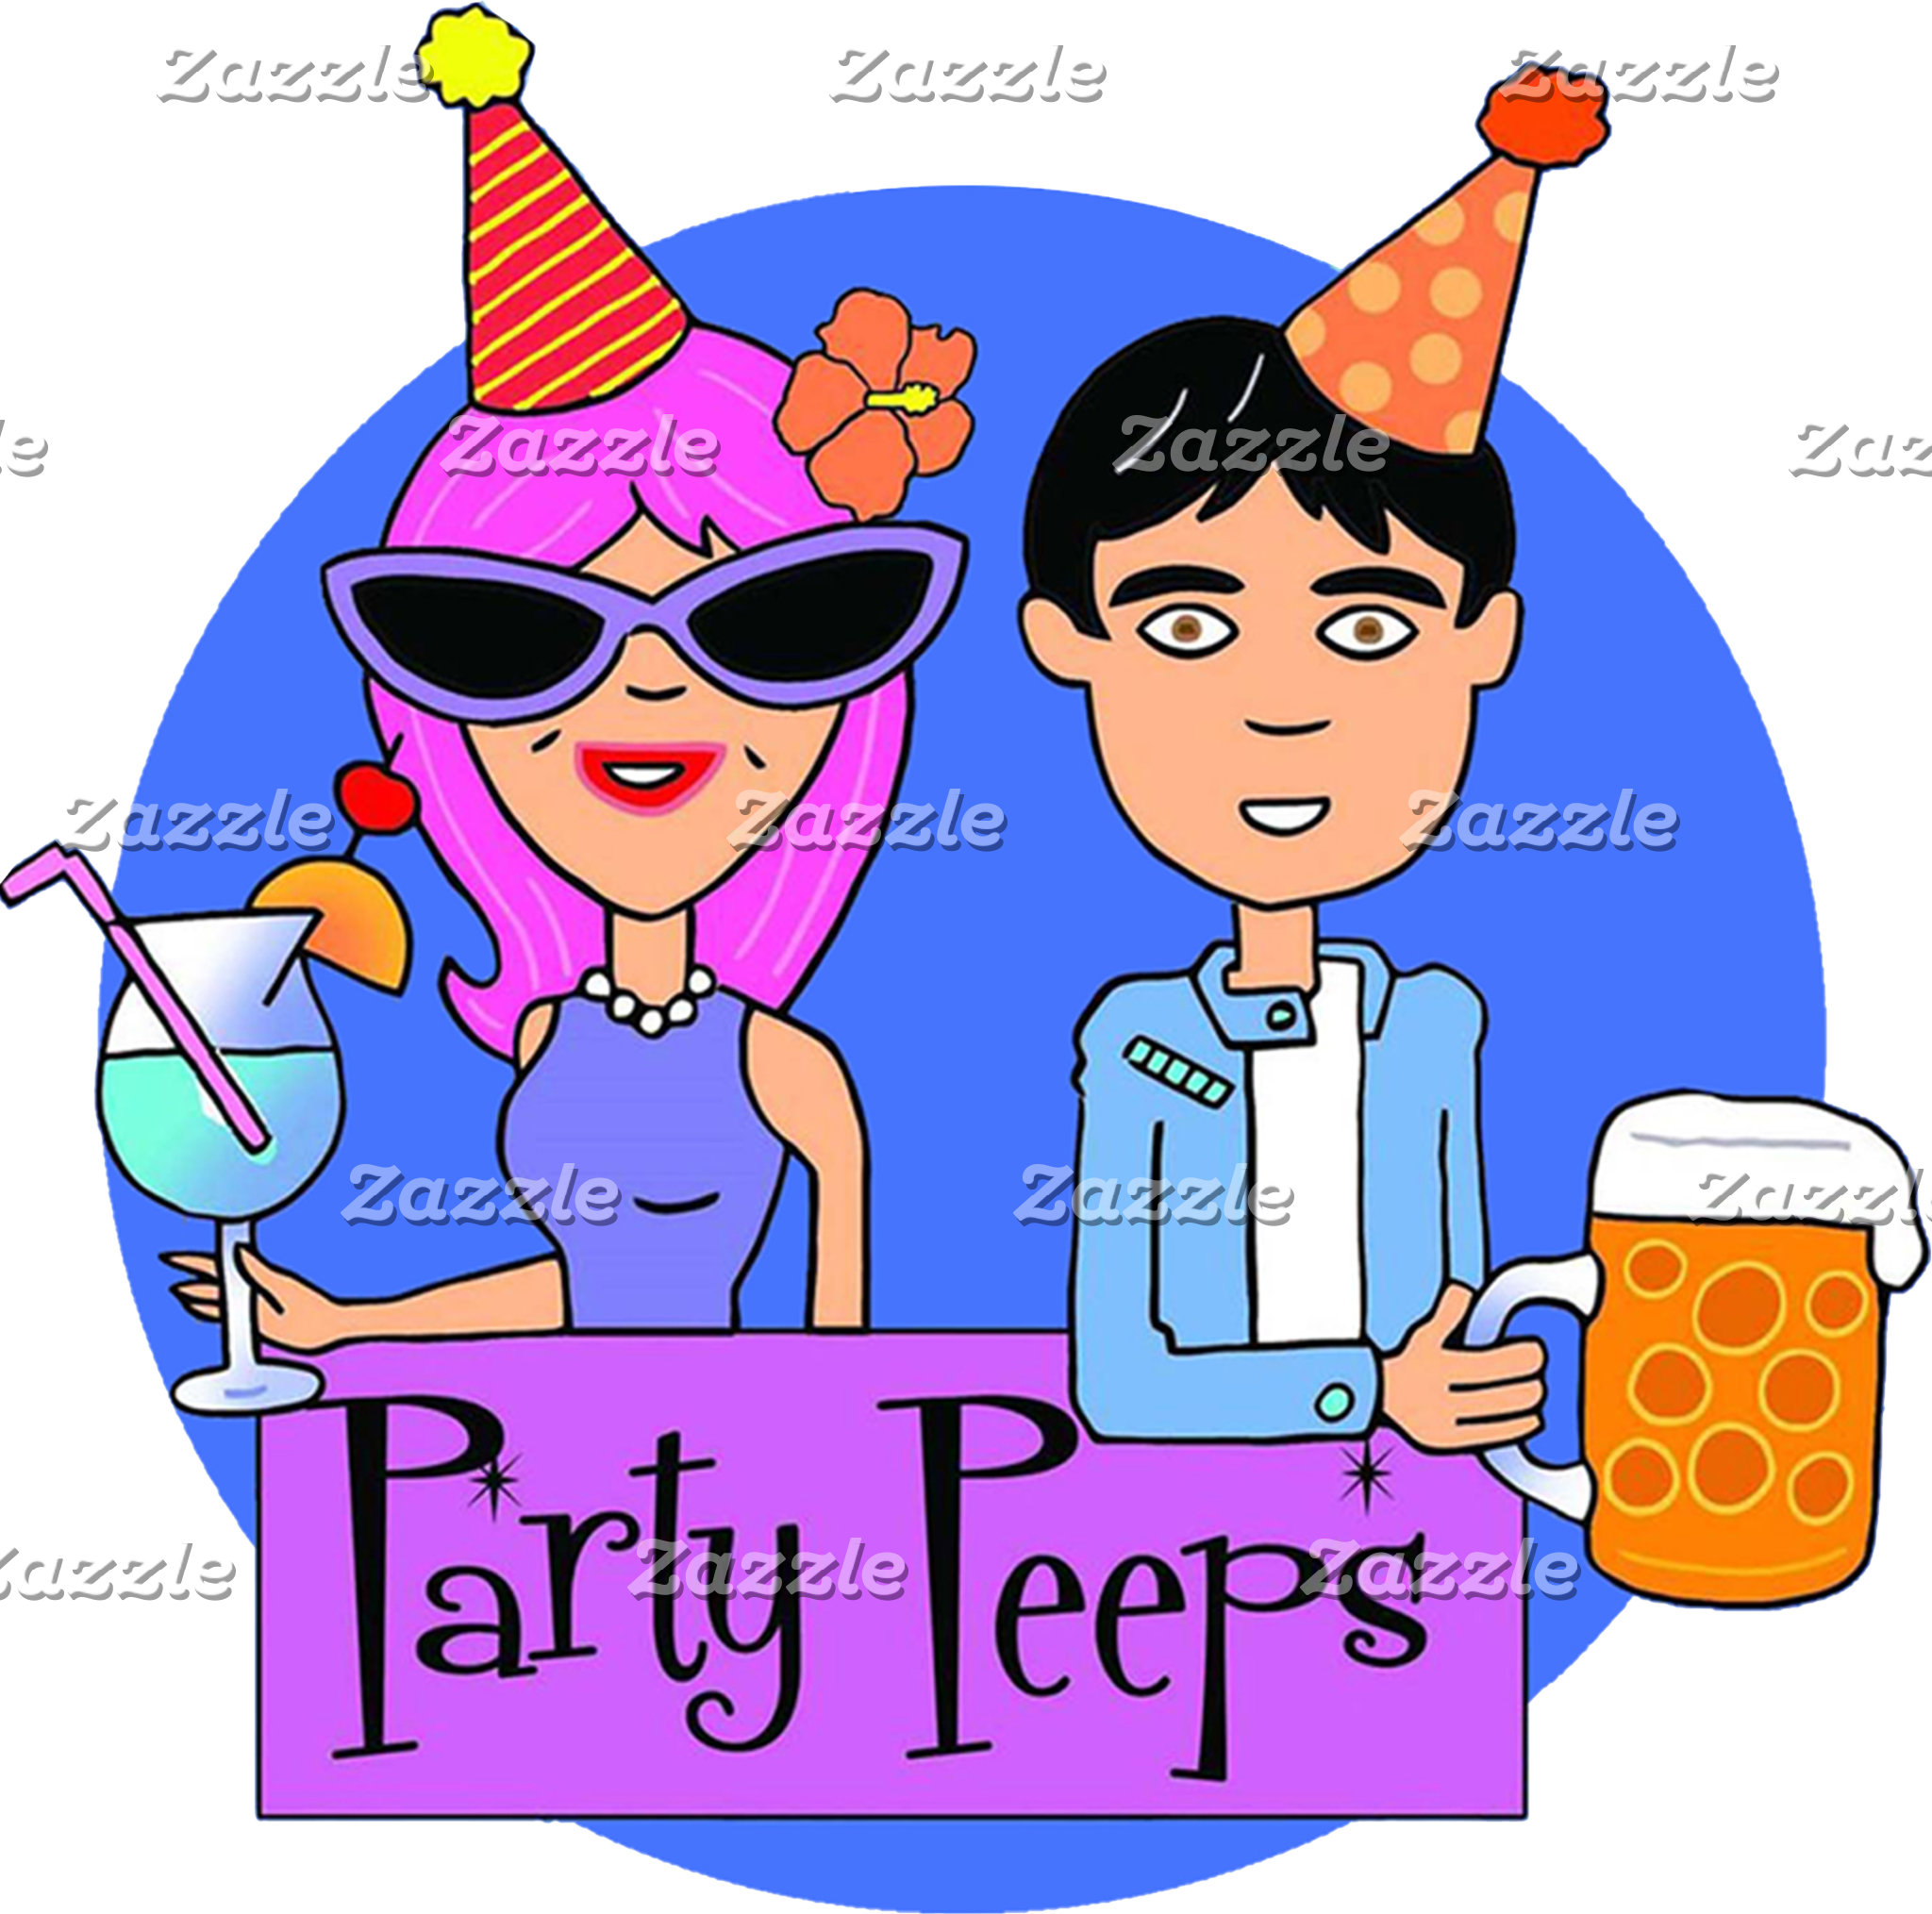 Visit Party Peeps on Zazzle